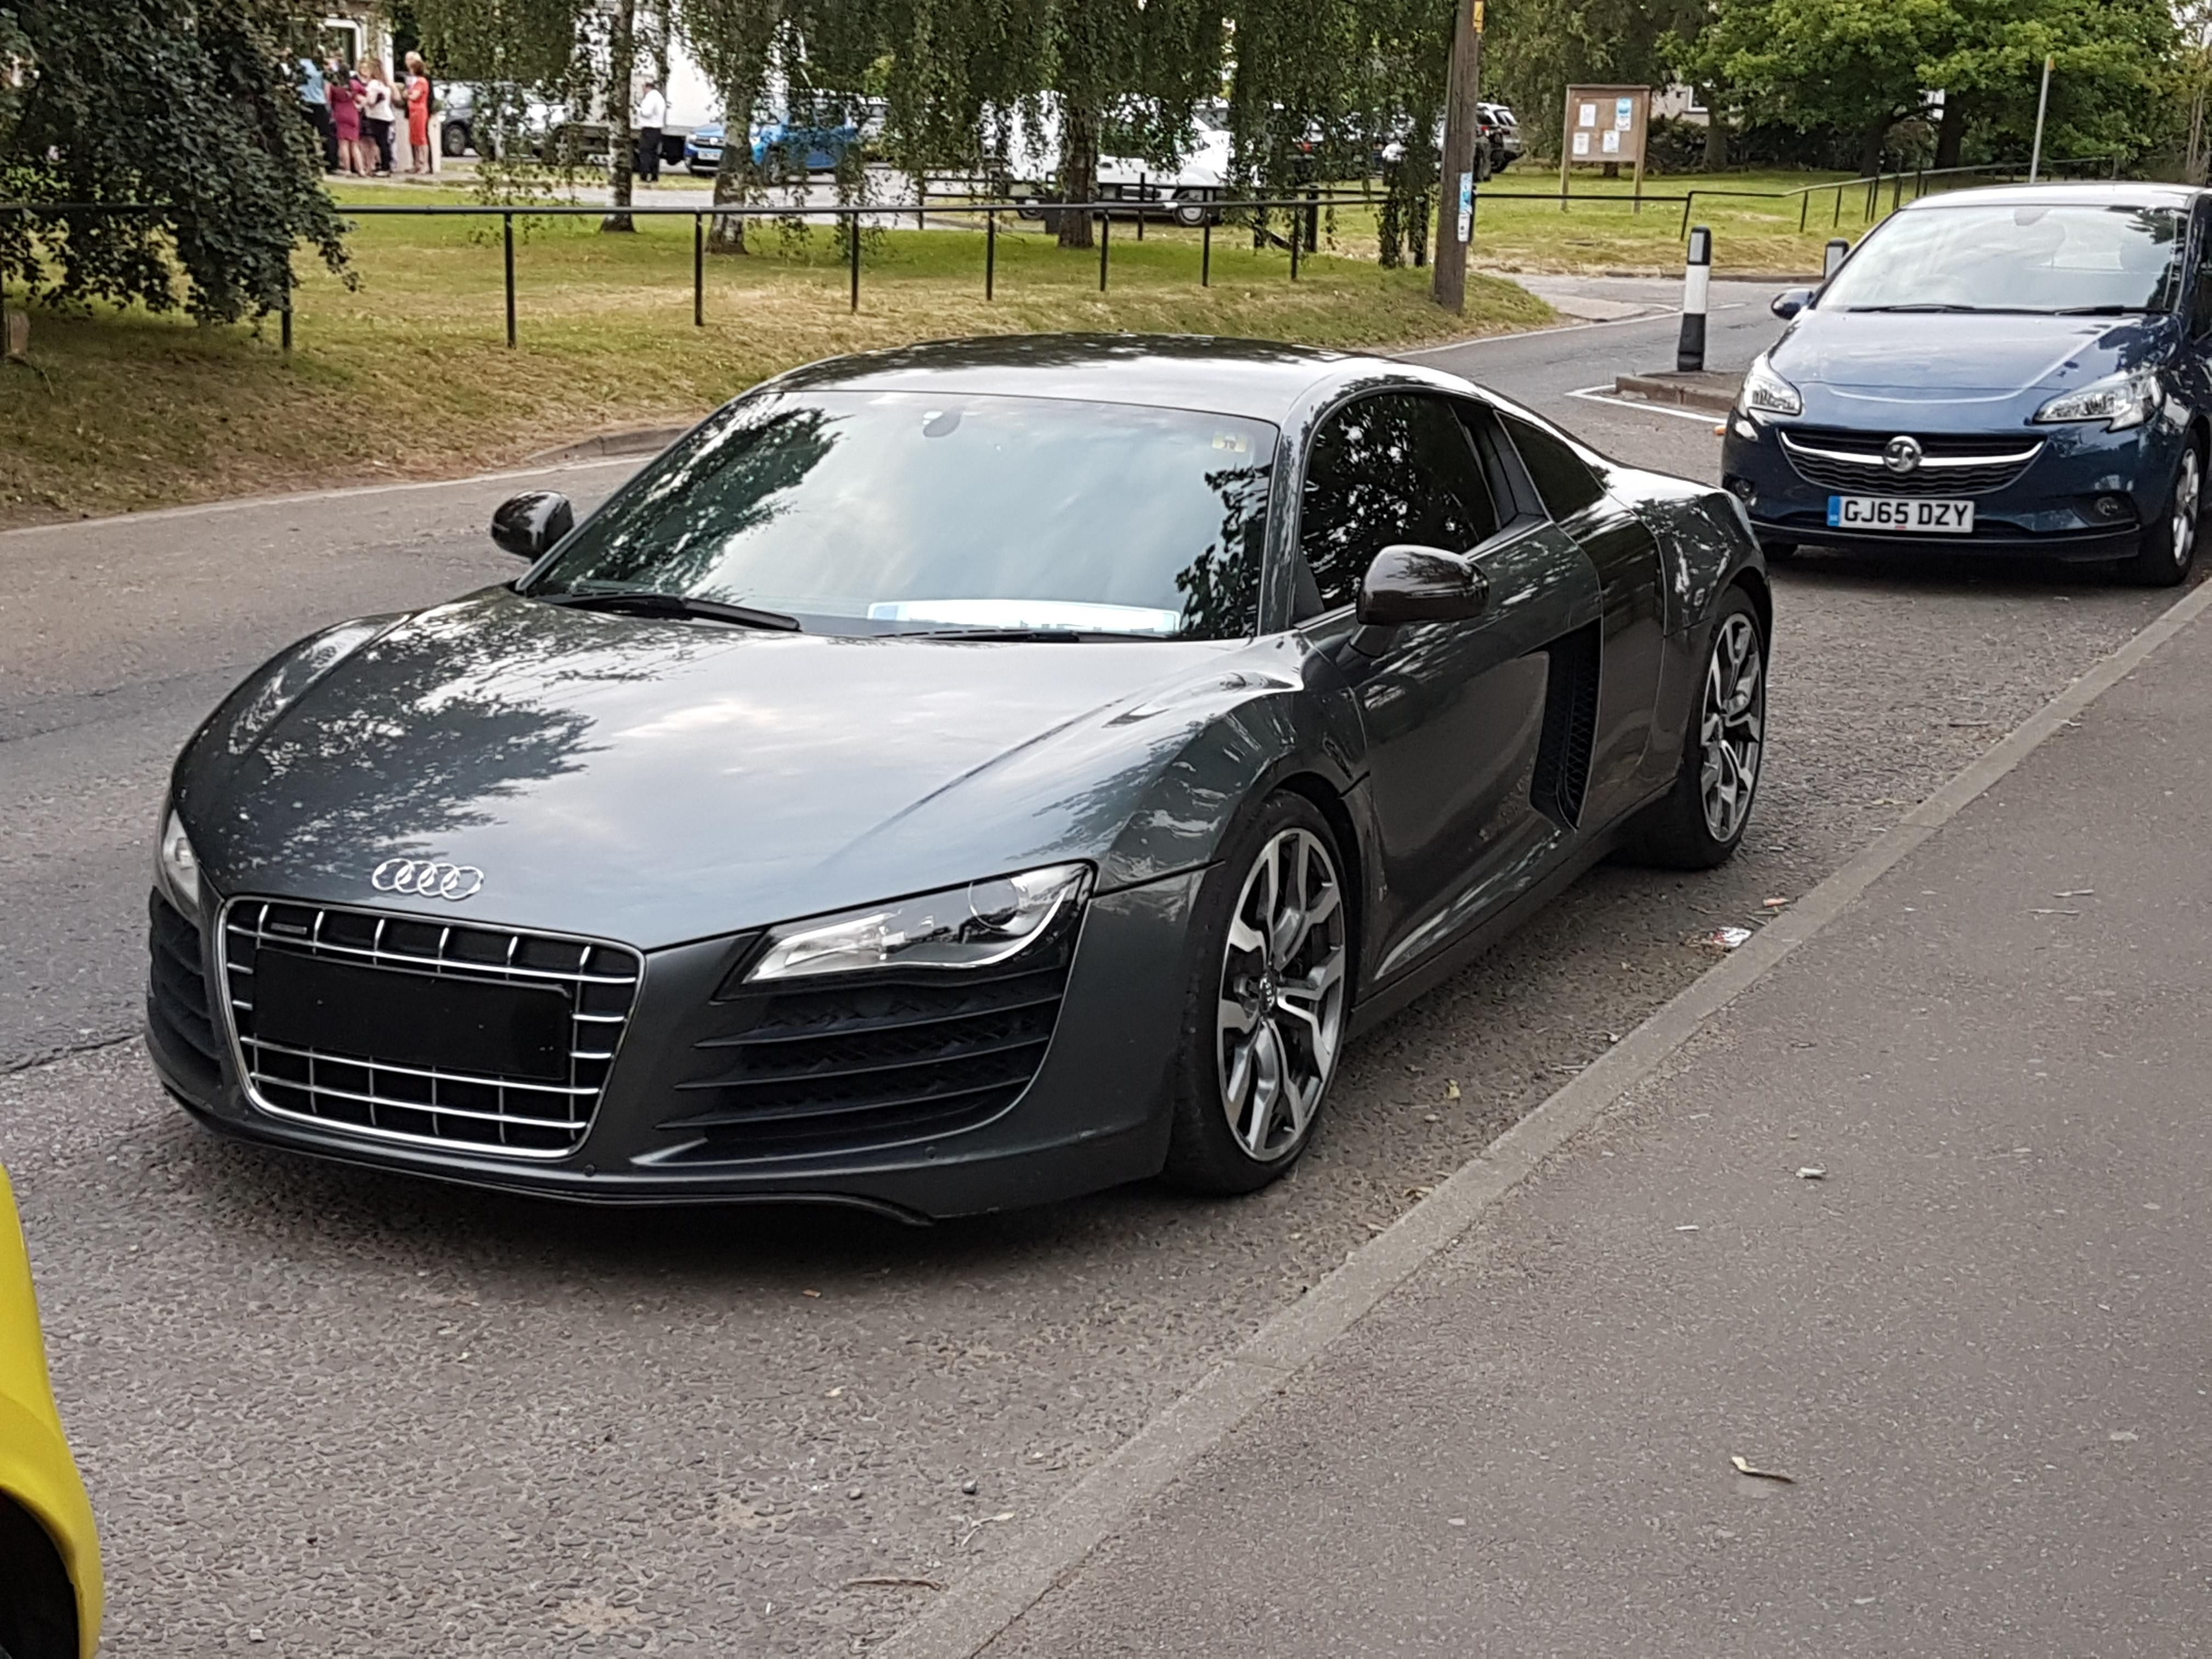 Audi R8 Spotted Today In The Uk Nice Space Grey With Black Accents Classic Cars Lamborghini Audi